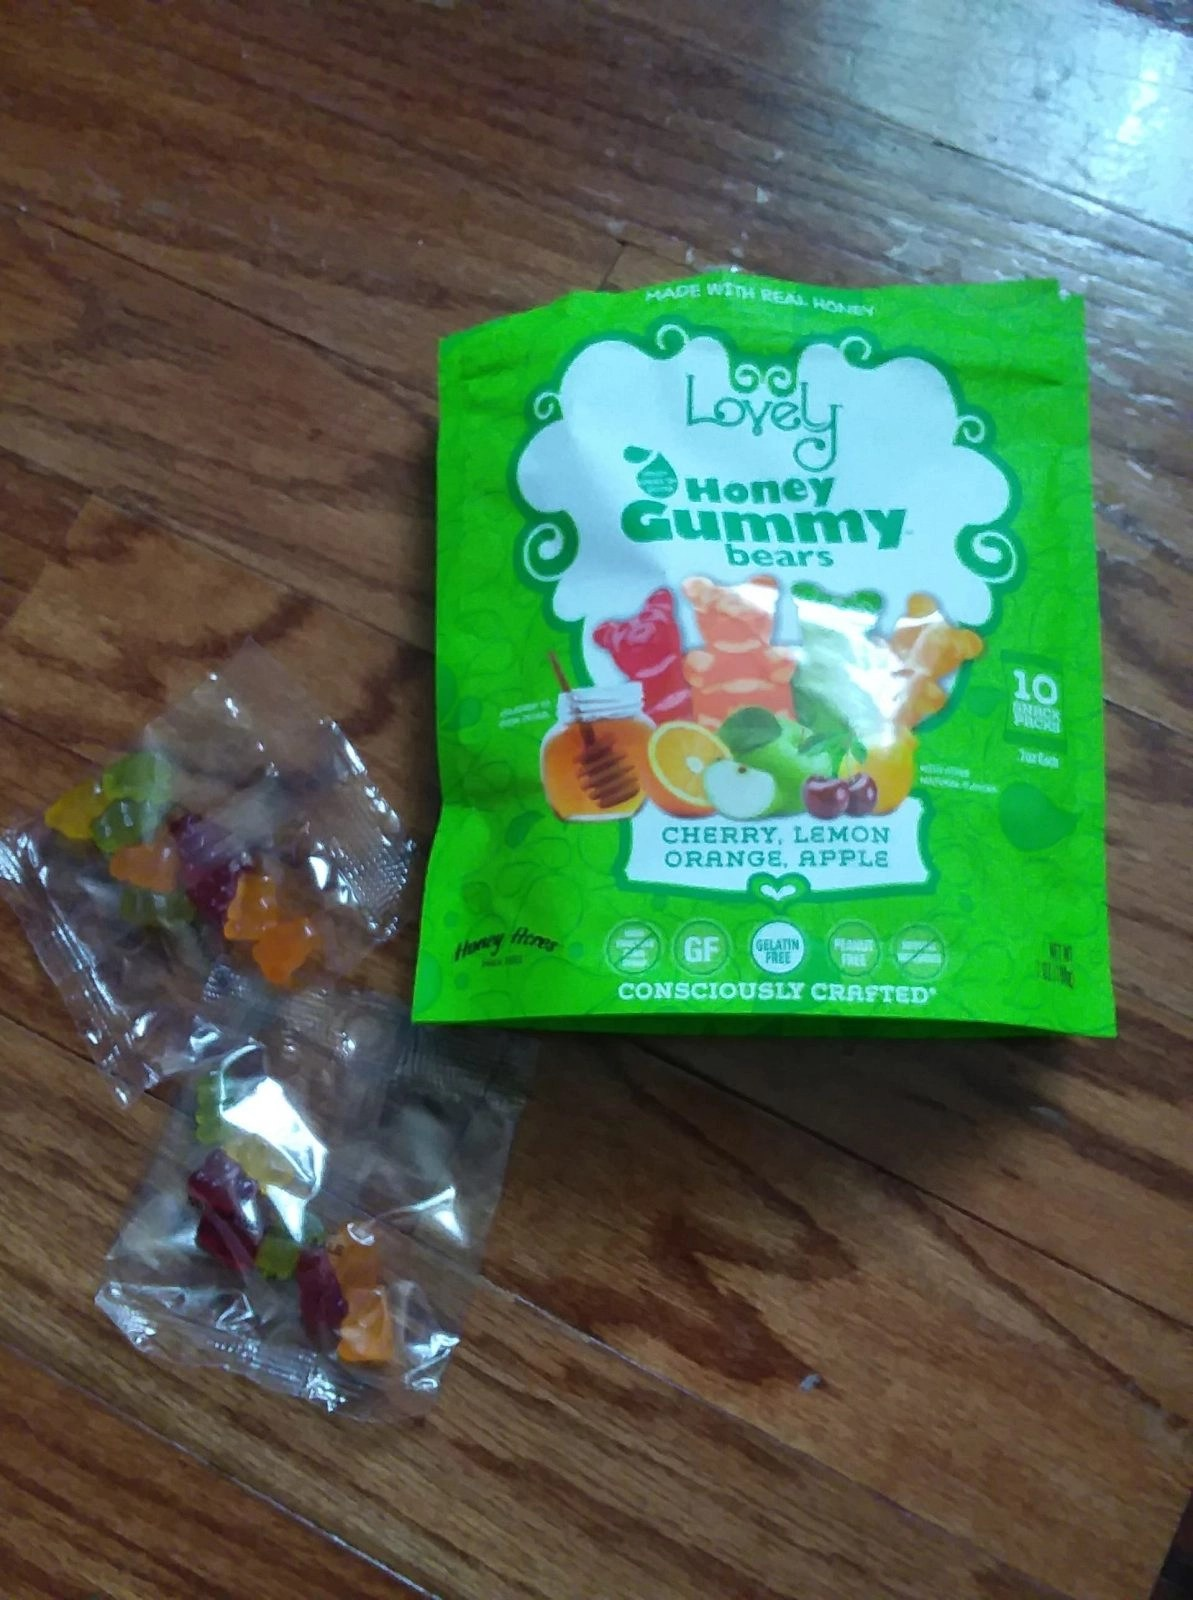 Honey Gummie Bears